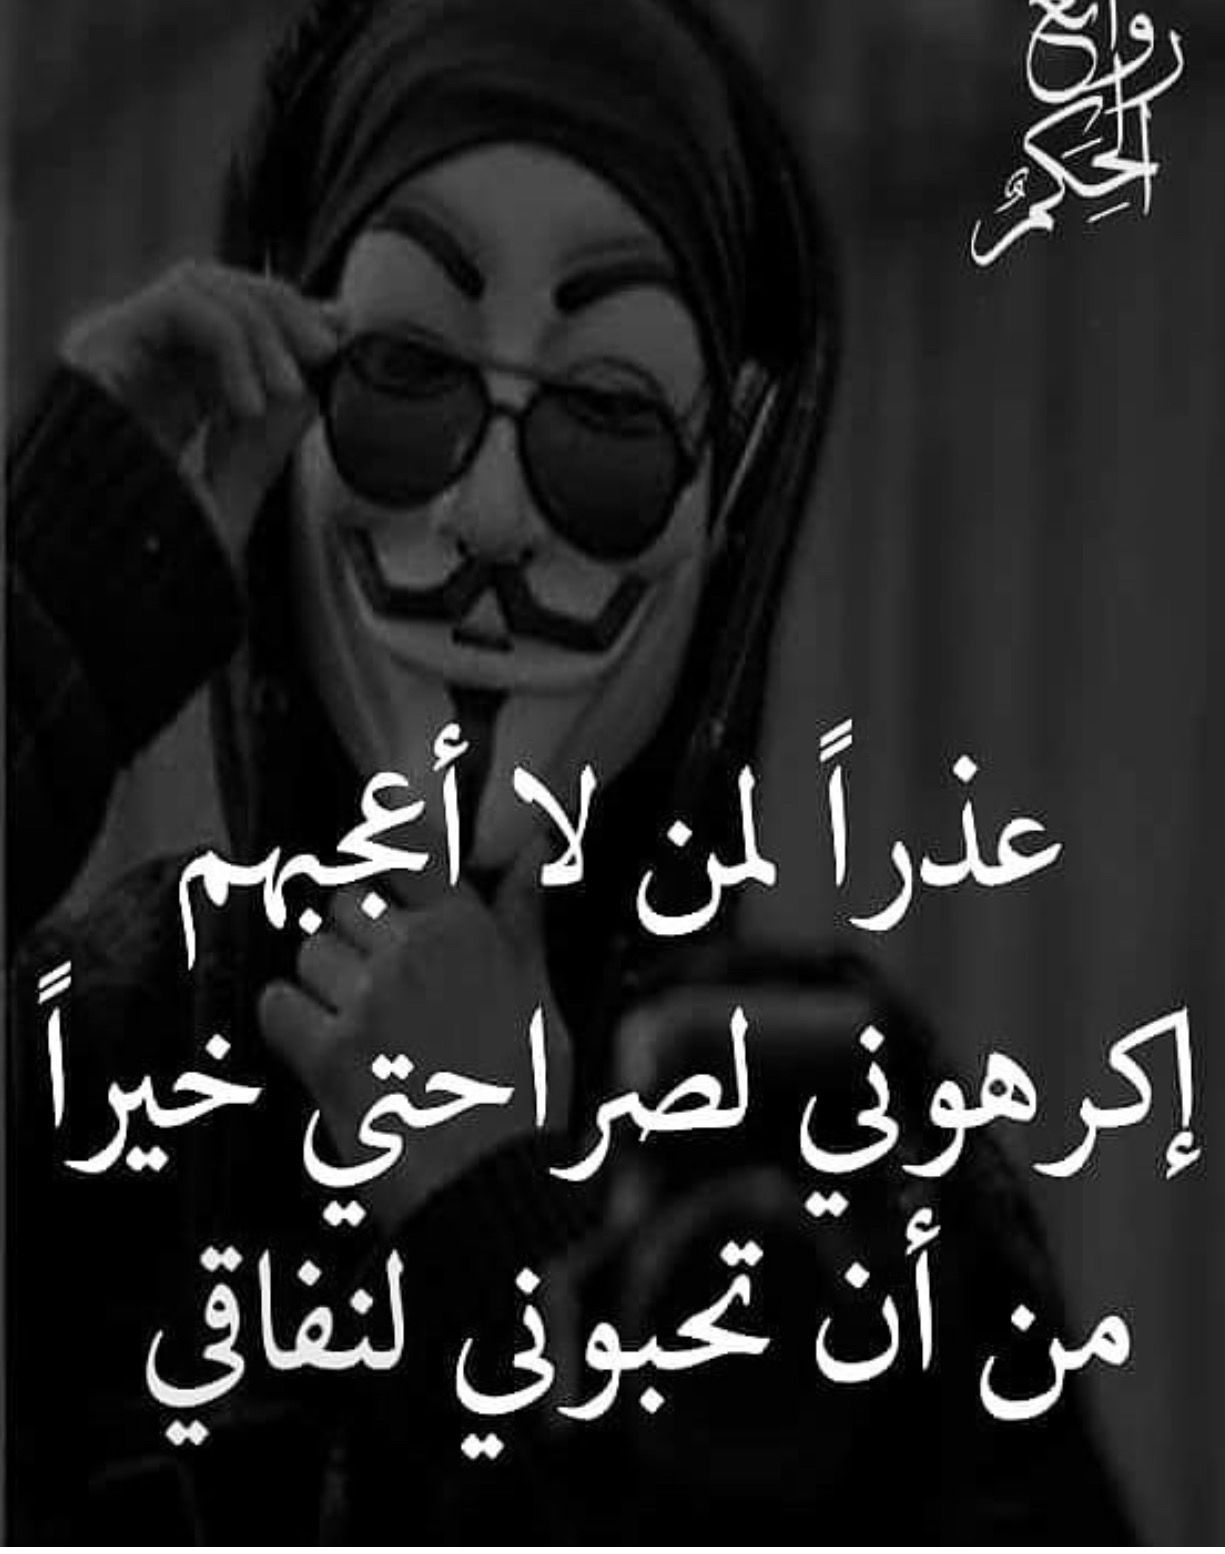 Pin By امةالله امةالله On كلمات راقت لي Cool Words Arabic Words Arabic Quotes